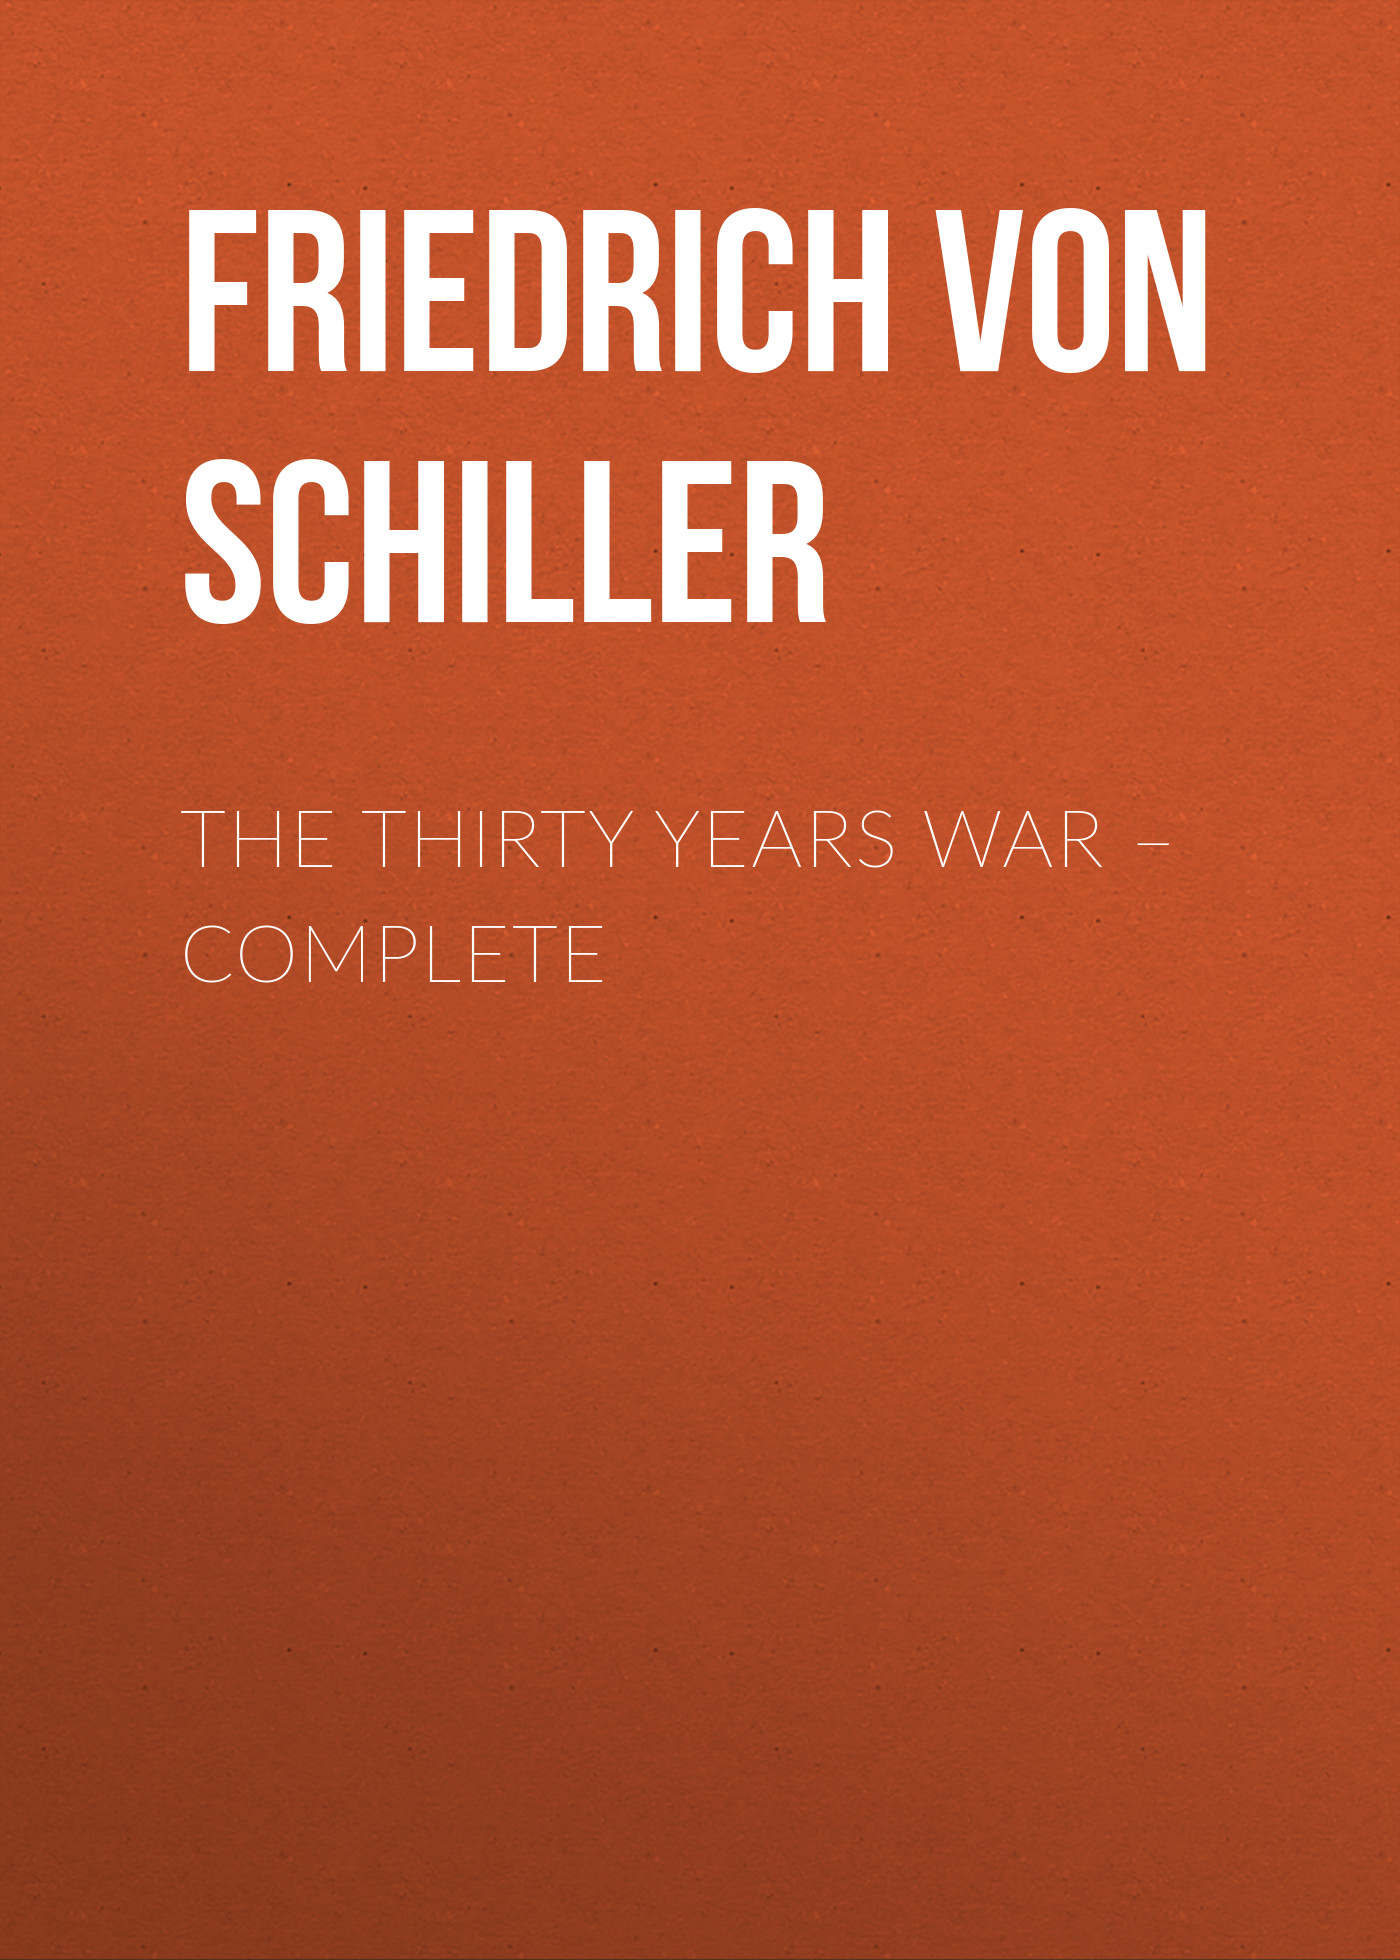 Friedrich von Schiller The Thirty Years War – Complete neil williamson elaine gallagher cameron johnston thirty years of rain